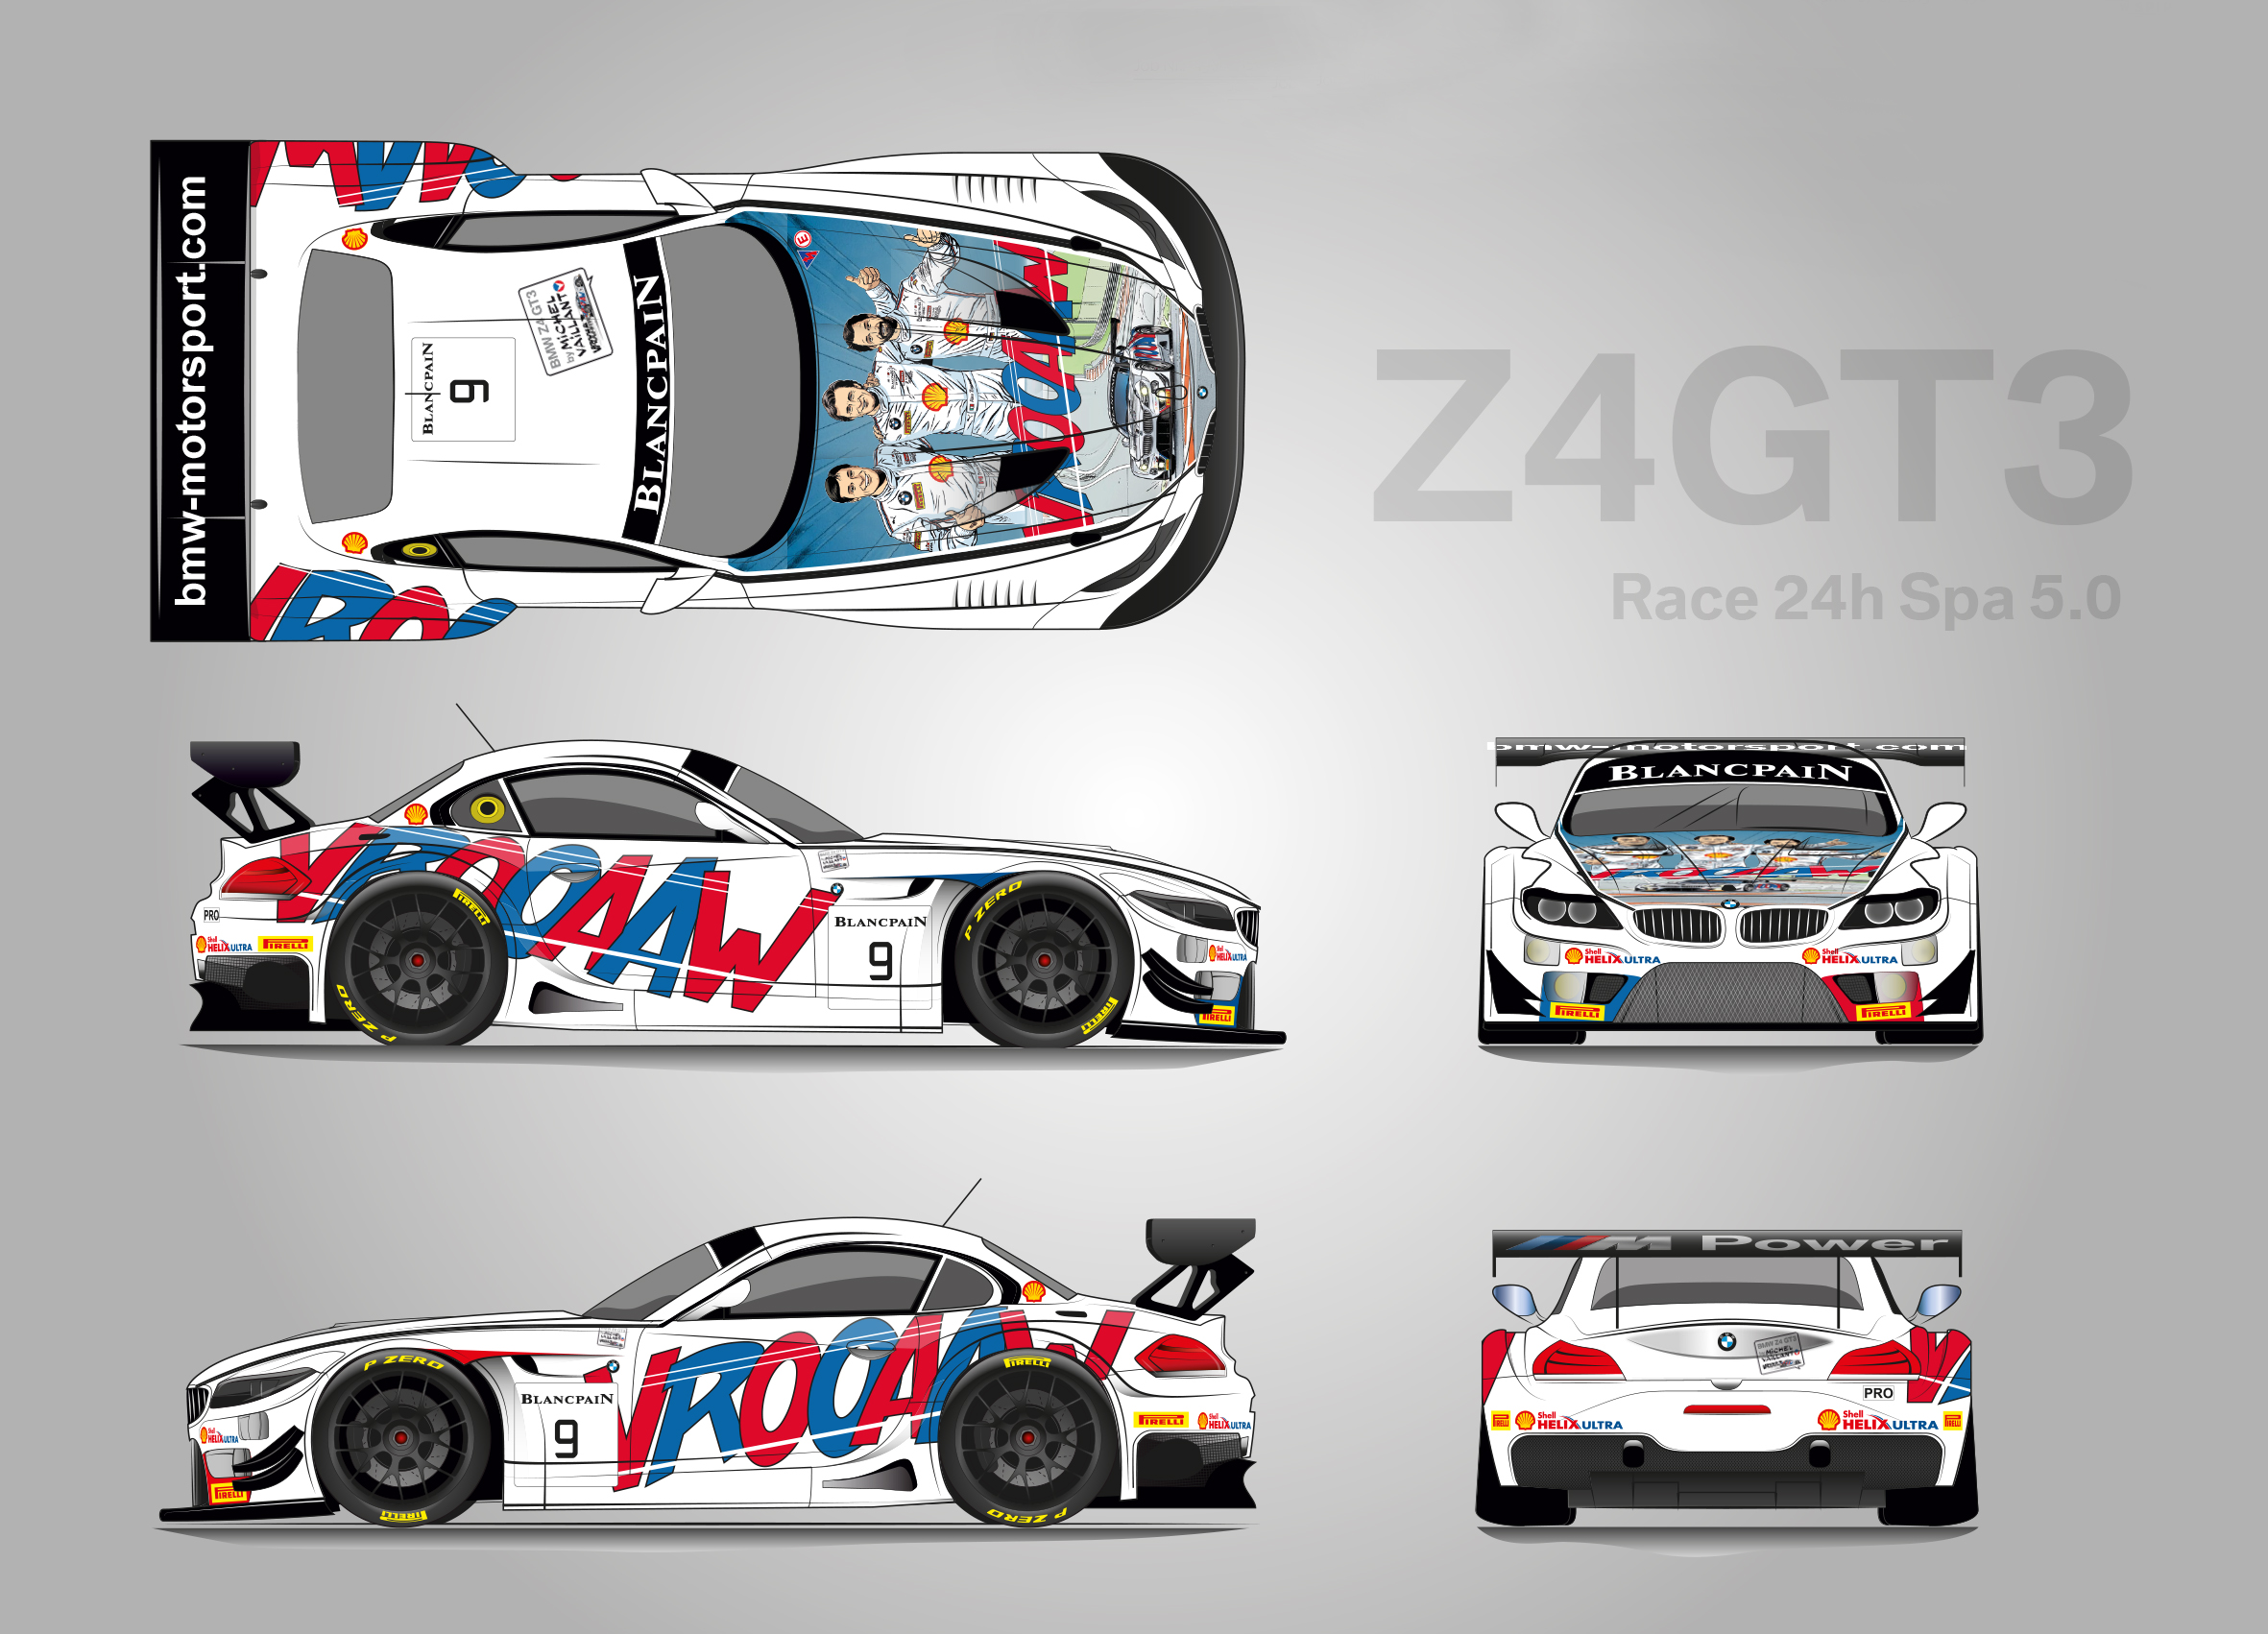 Two bmw z4 gt3s will have a special comic book livery at spa 5 photos malvernweather Image collections